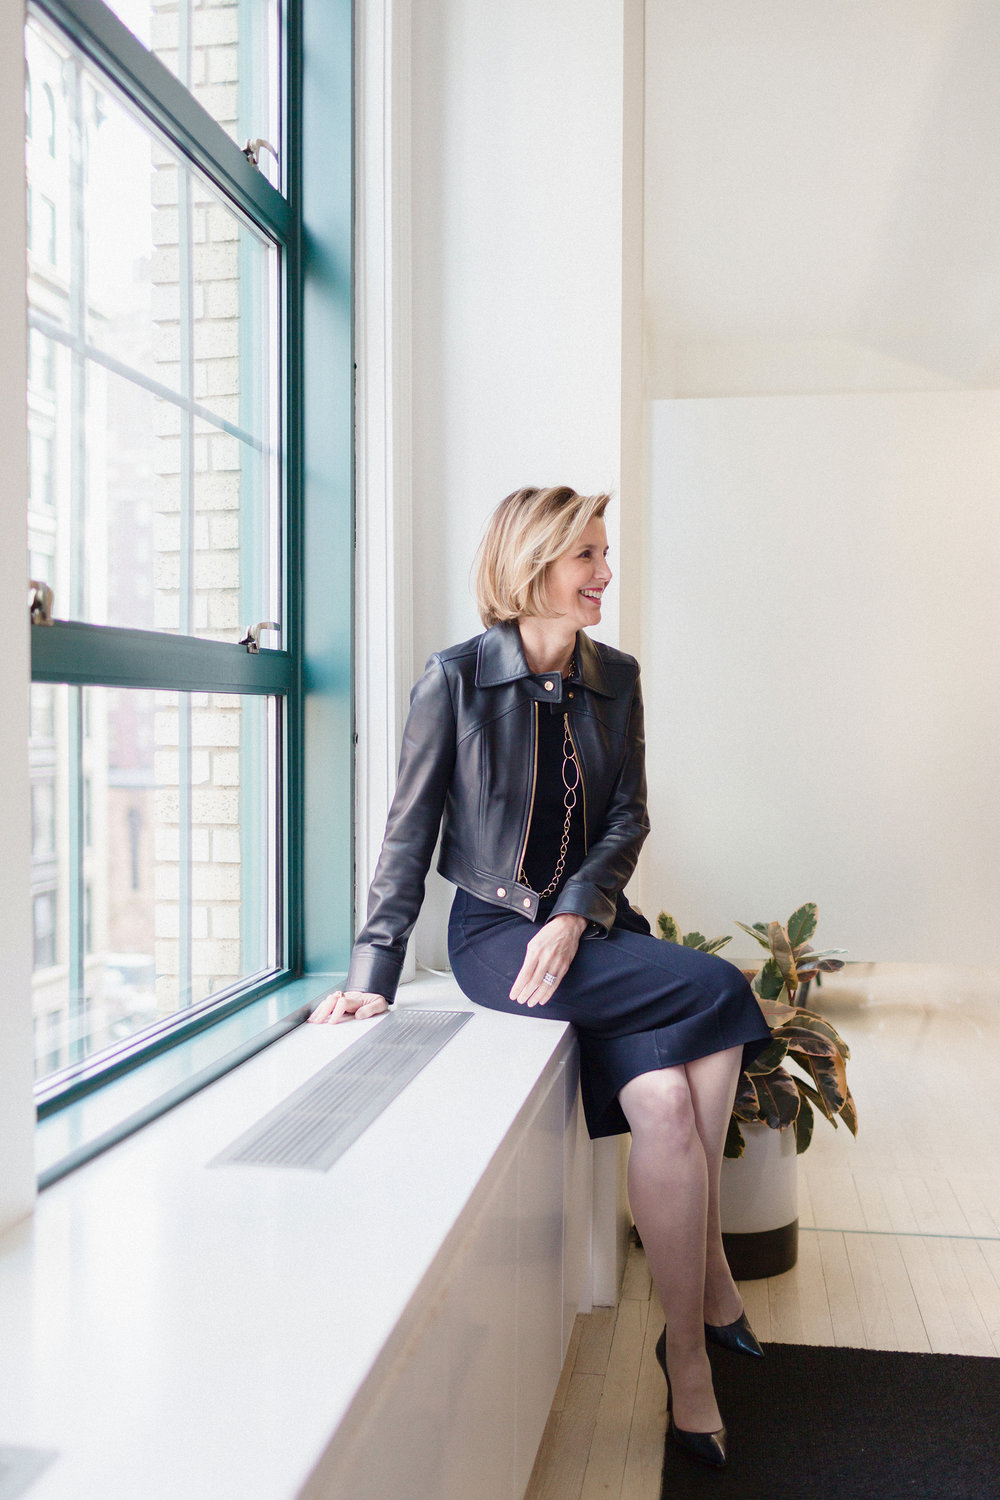 Sallie Krawcheck, CEO of Ellevest